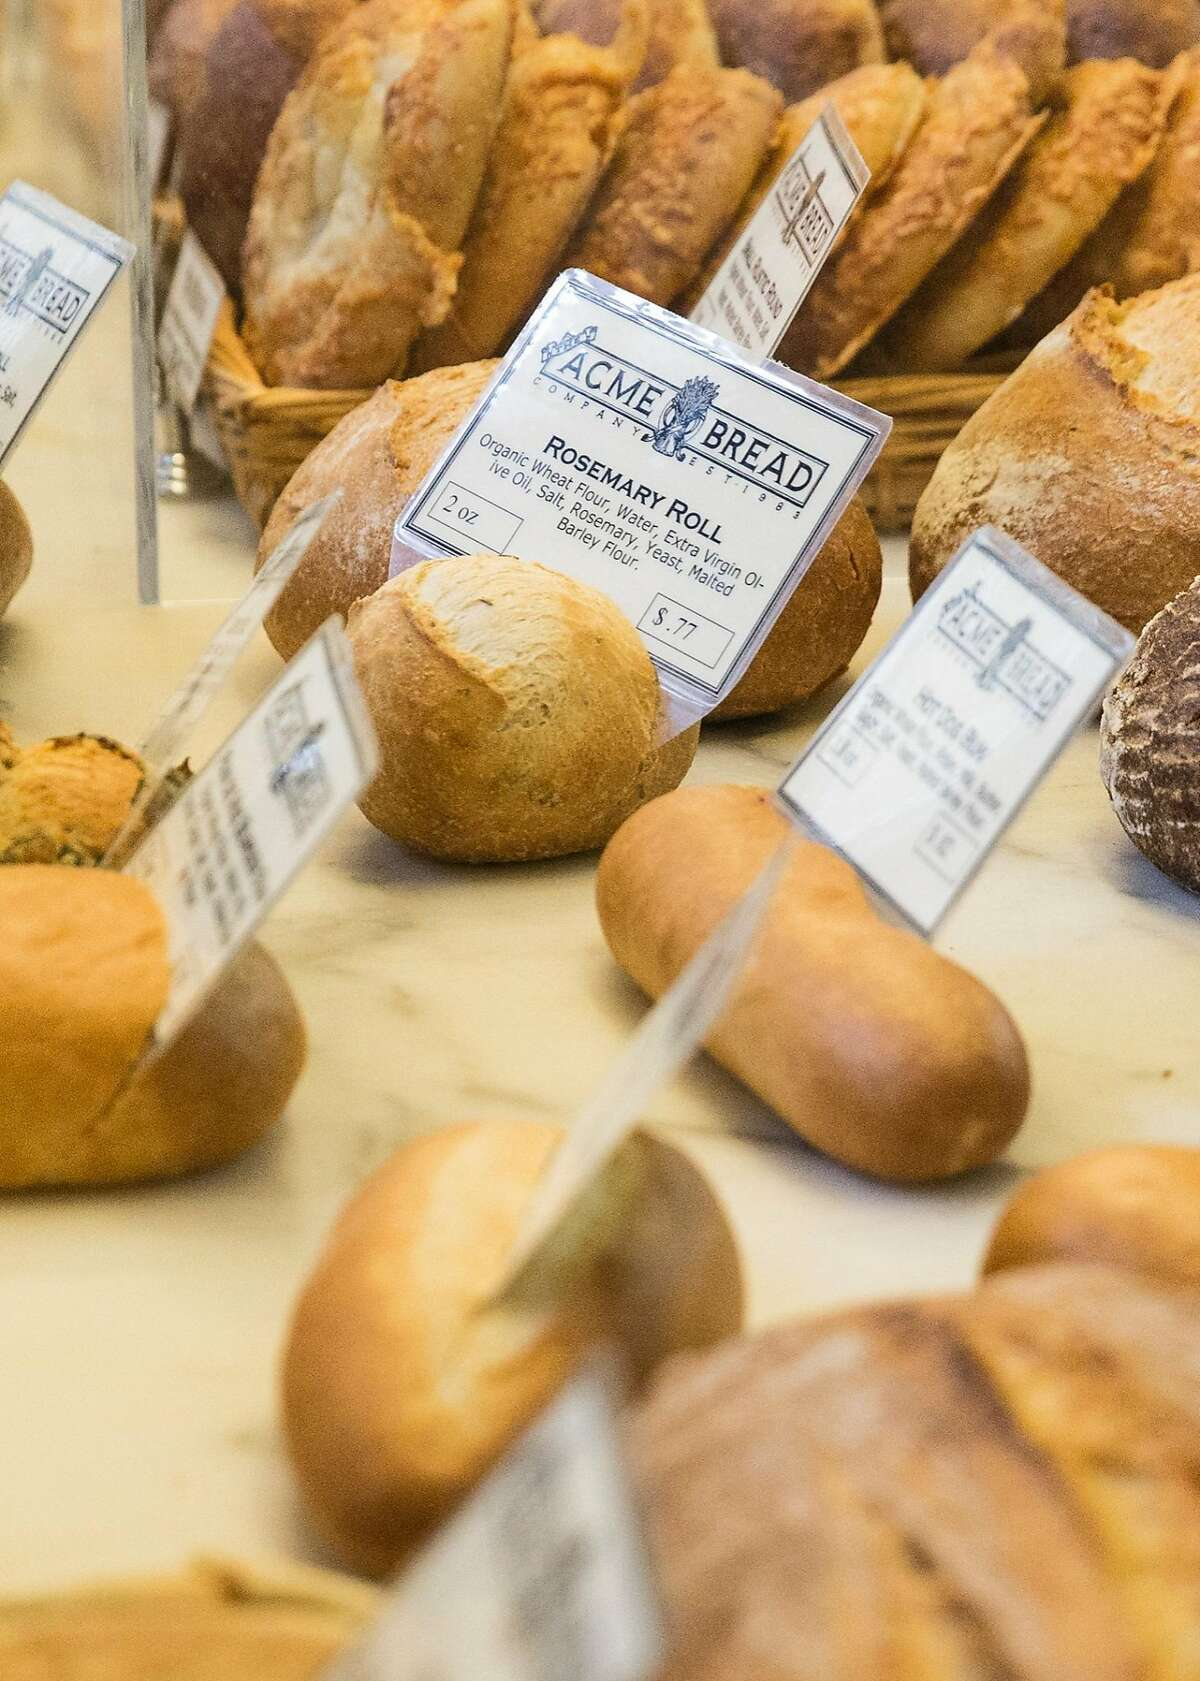 A variety of bread loafs sit on display at Acme Bread inside the Ferry Building Saturday, March 3, 2018 in San Francisco, Calif.